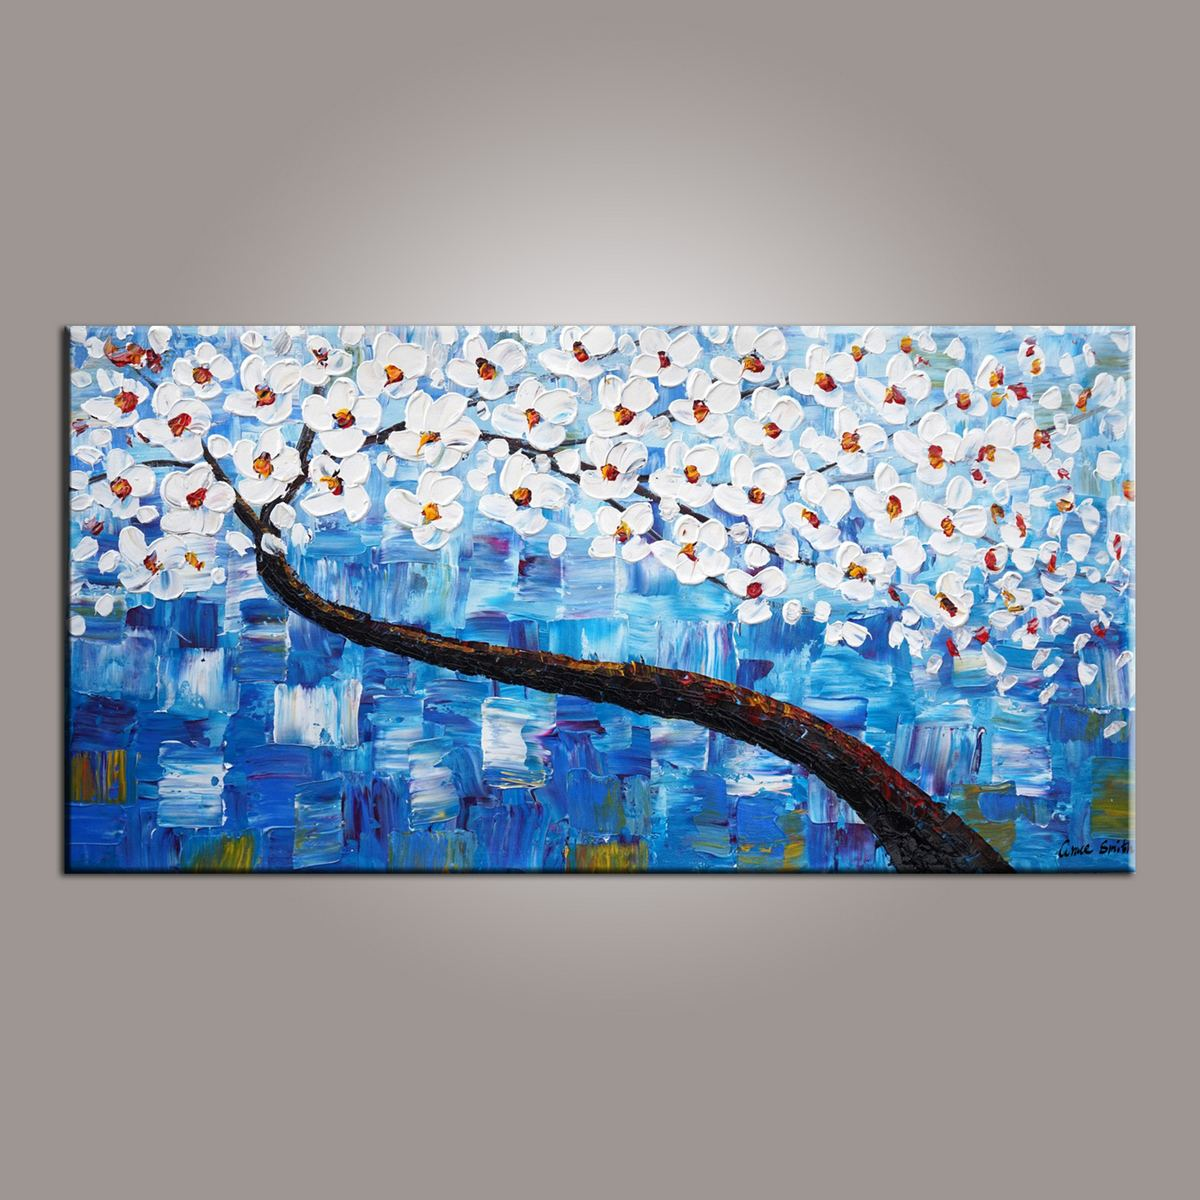 Painting on Sale, Flower Painting, Dining Room Wall Art, Blue Flower Tree Painting, Abstract Painting, Art on Canvas, Modern Art, Contemporary Art-Paintingforhome